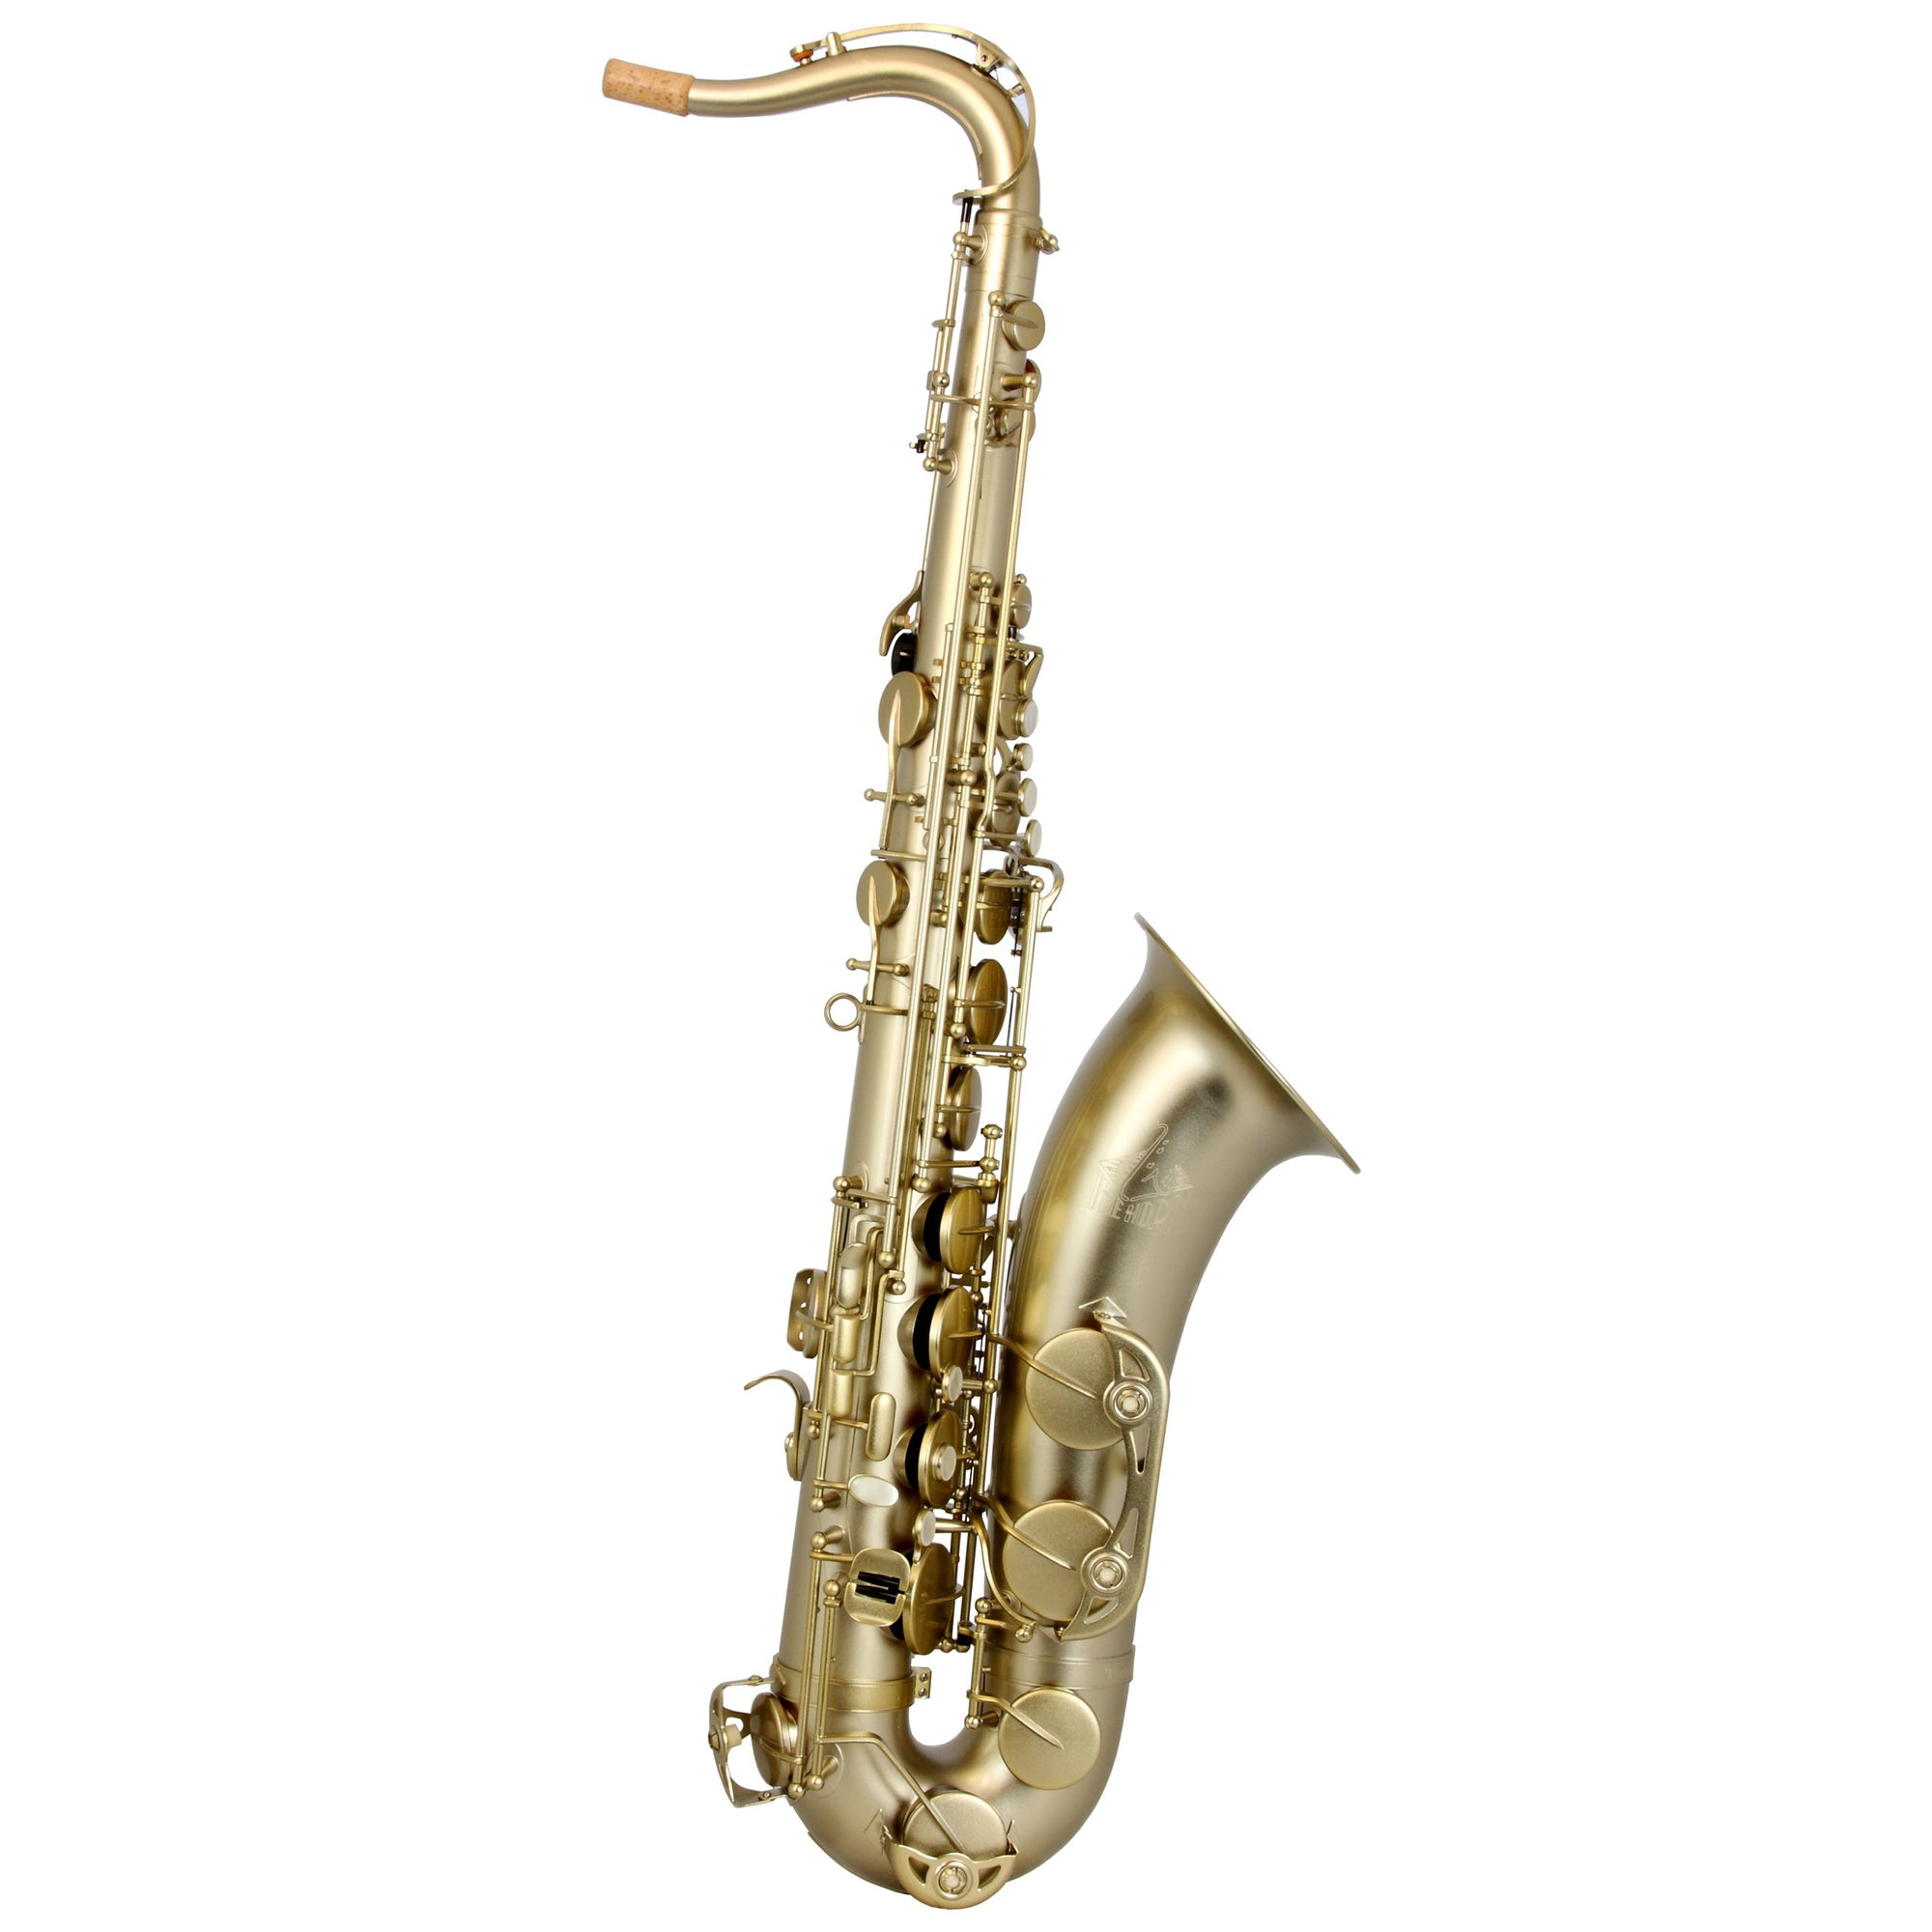 Trevor James - Horn '88 Tenor Saxophone-Saxophone-Trevor James-Music Elements